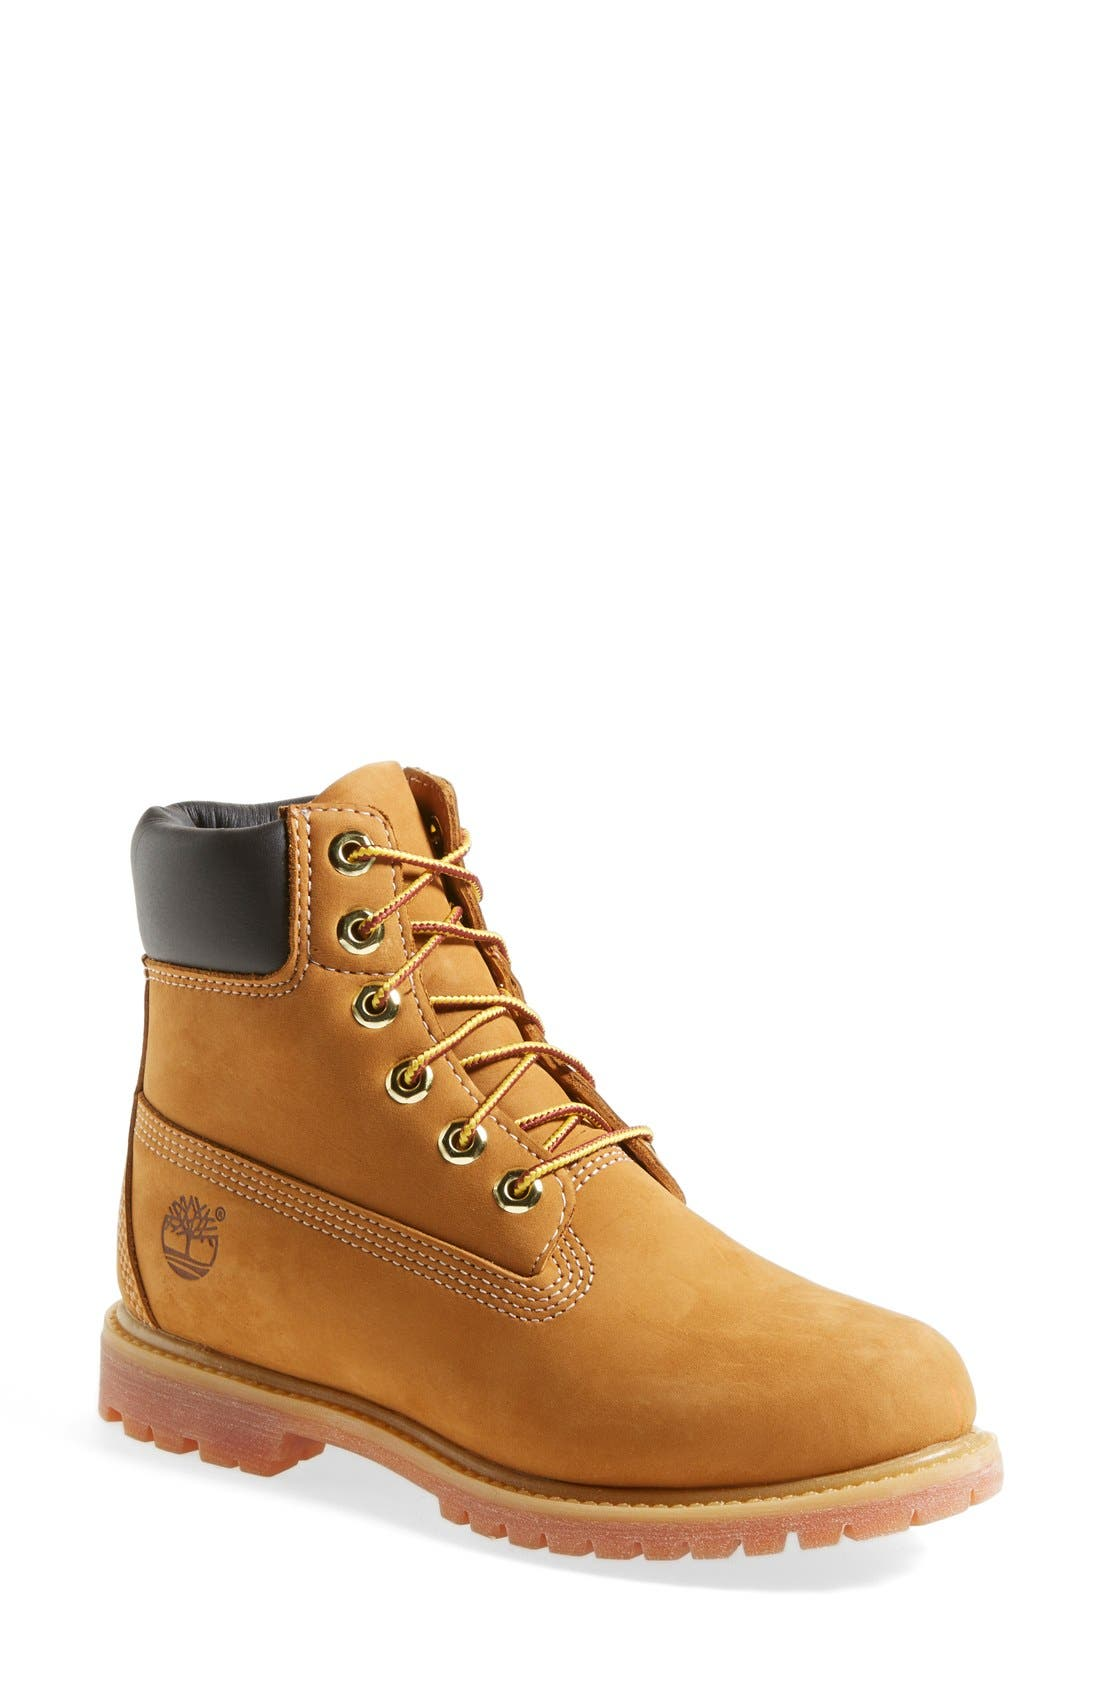 Timberland 6 Color premium boot w Ankle Boots Color Yellow  Women